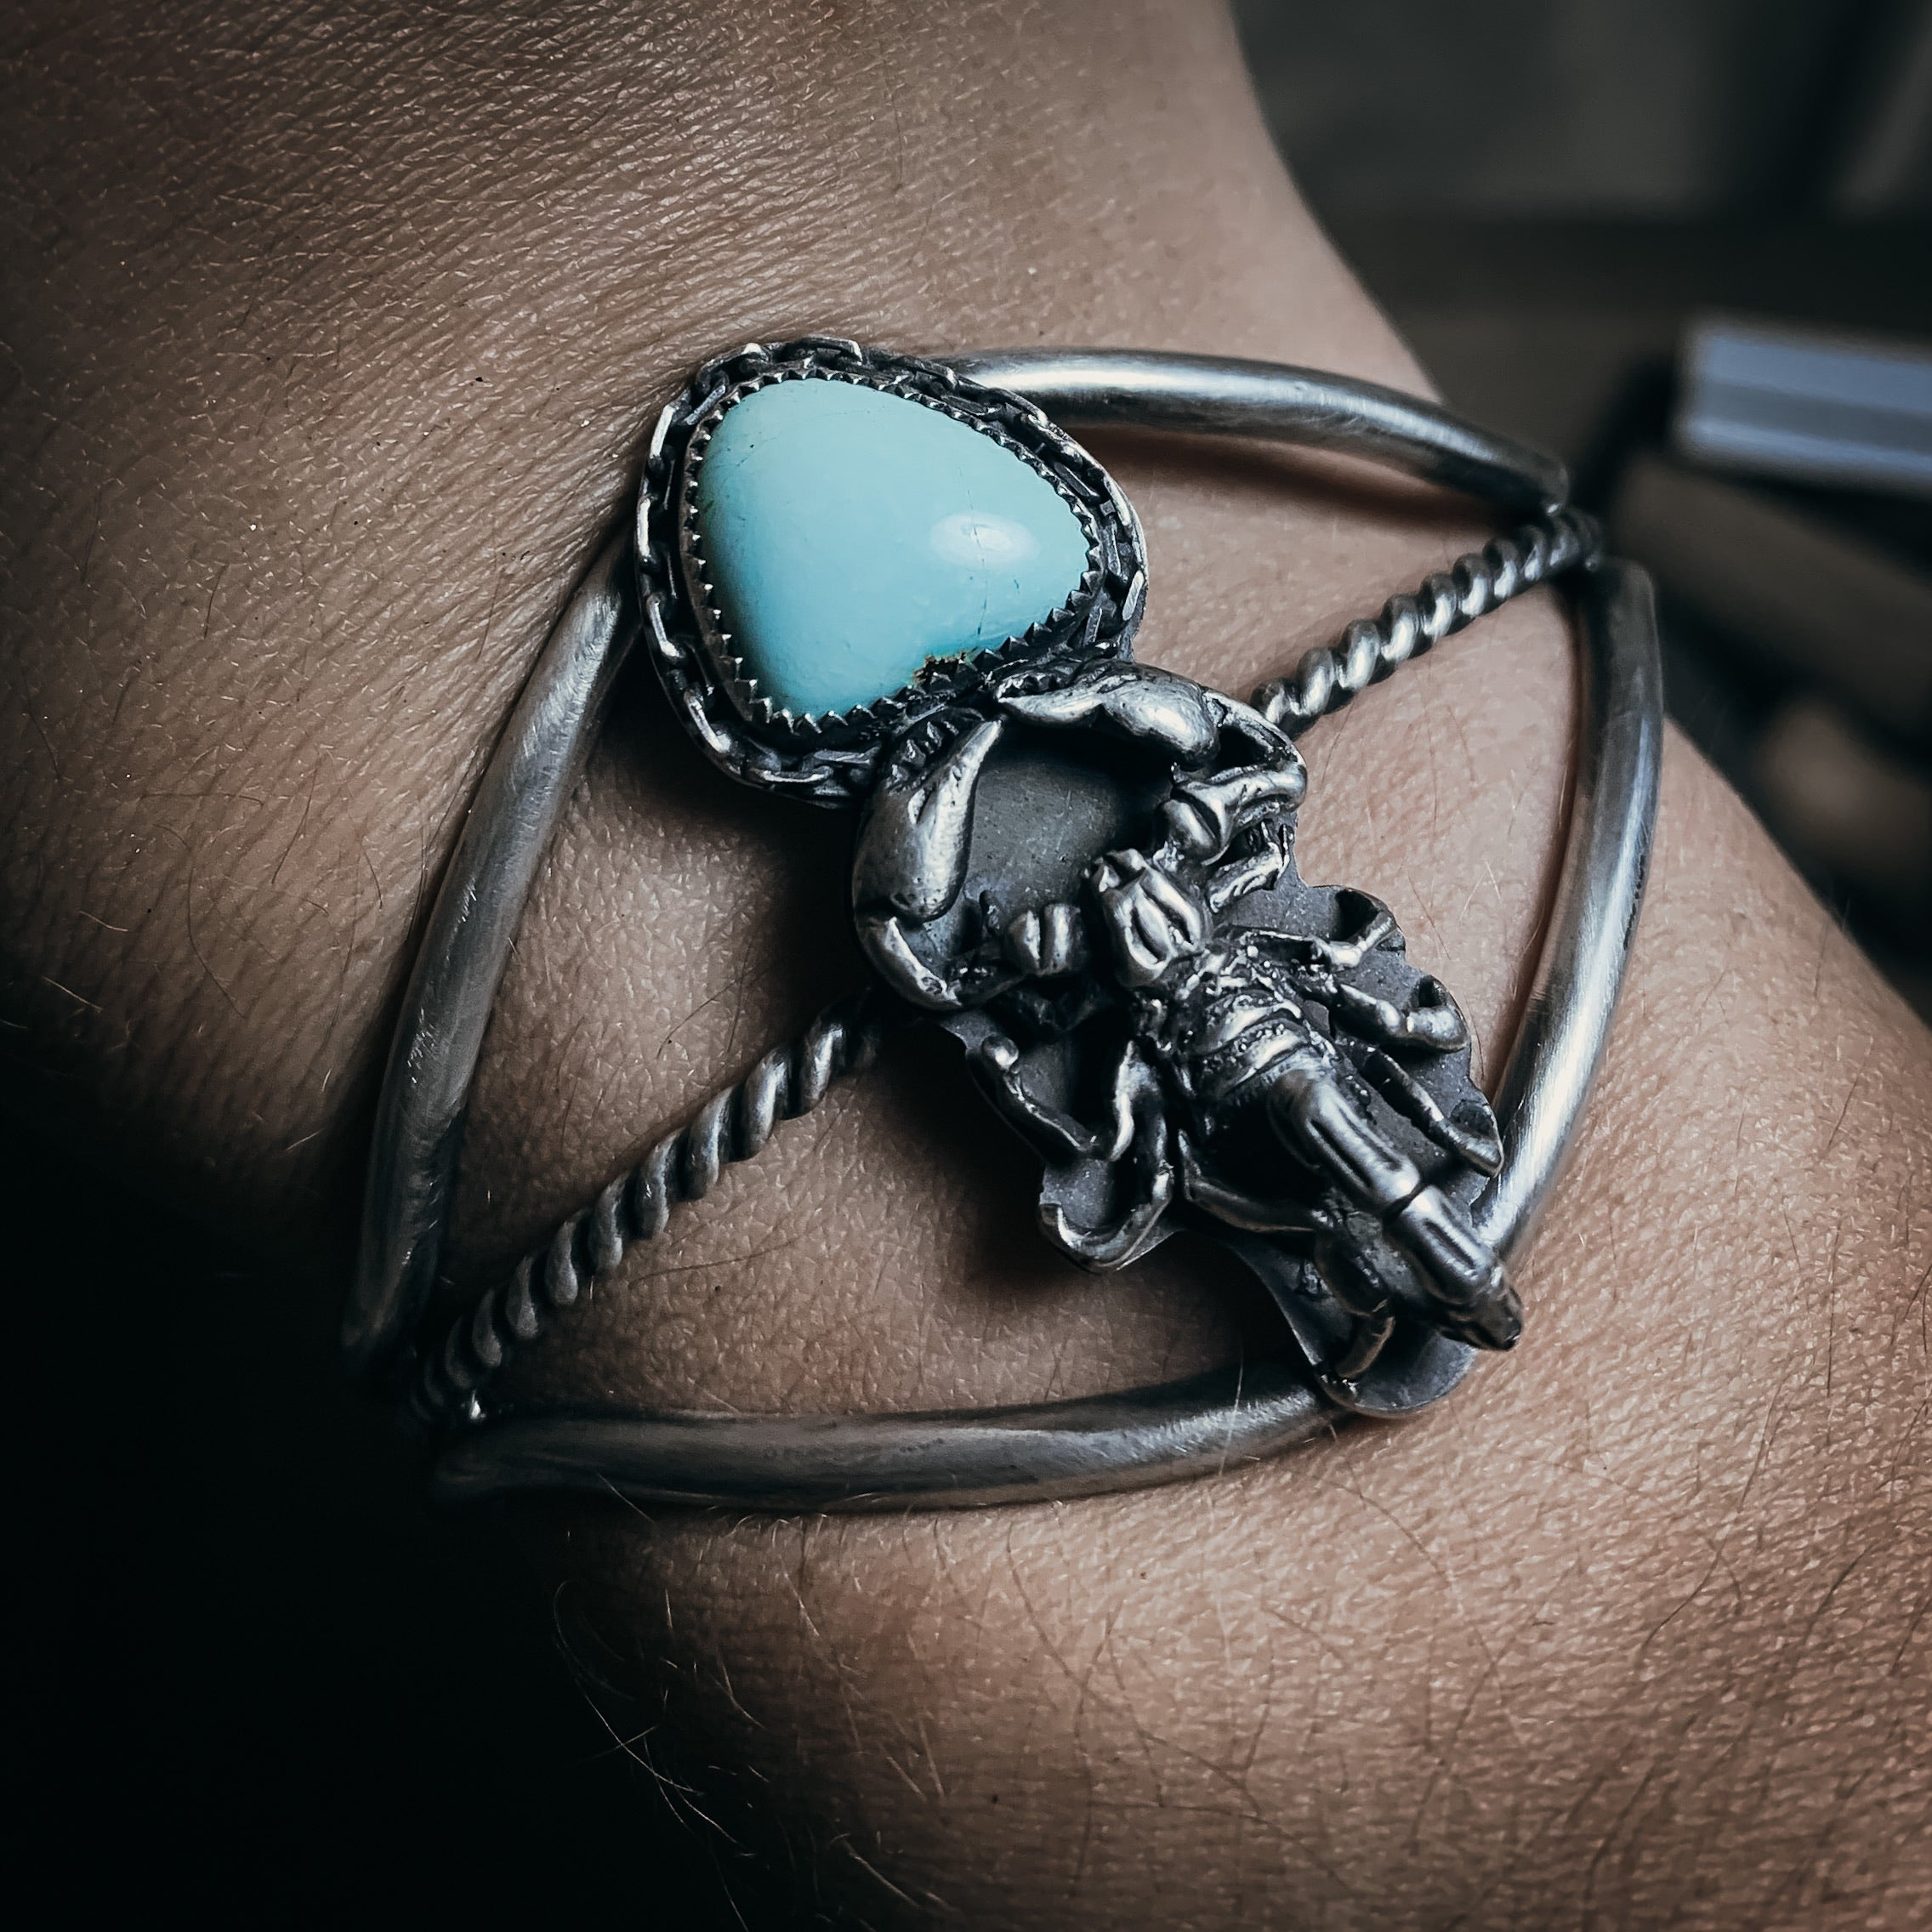 Scorpion and turquoise cuff